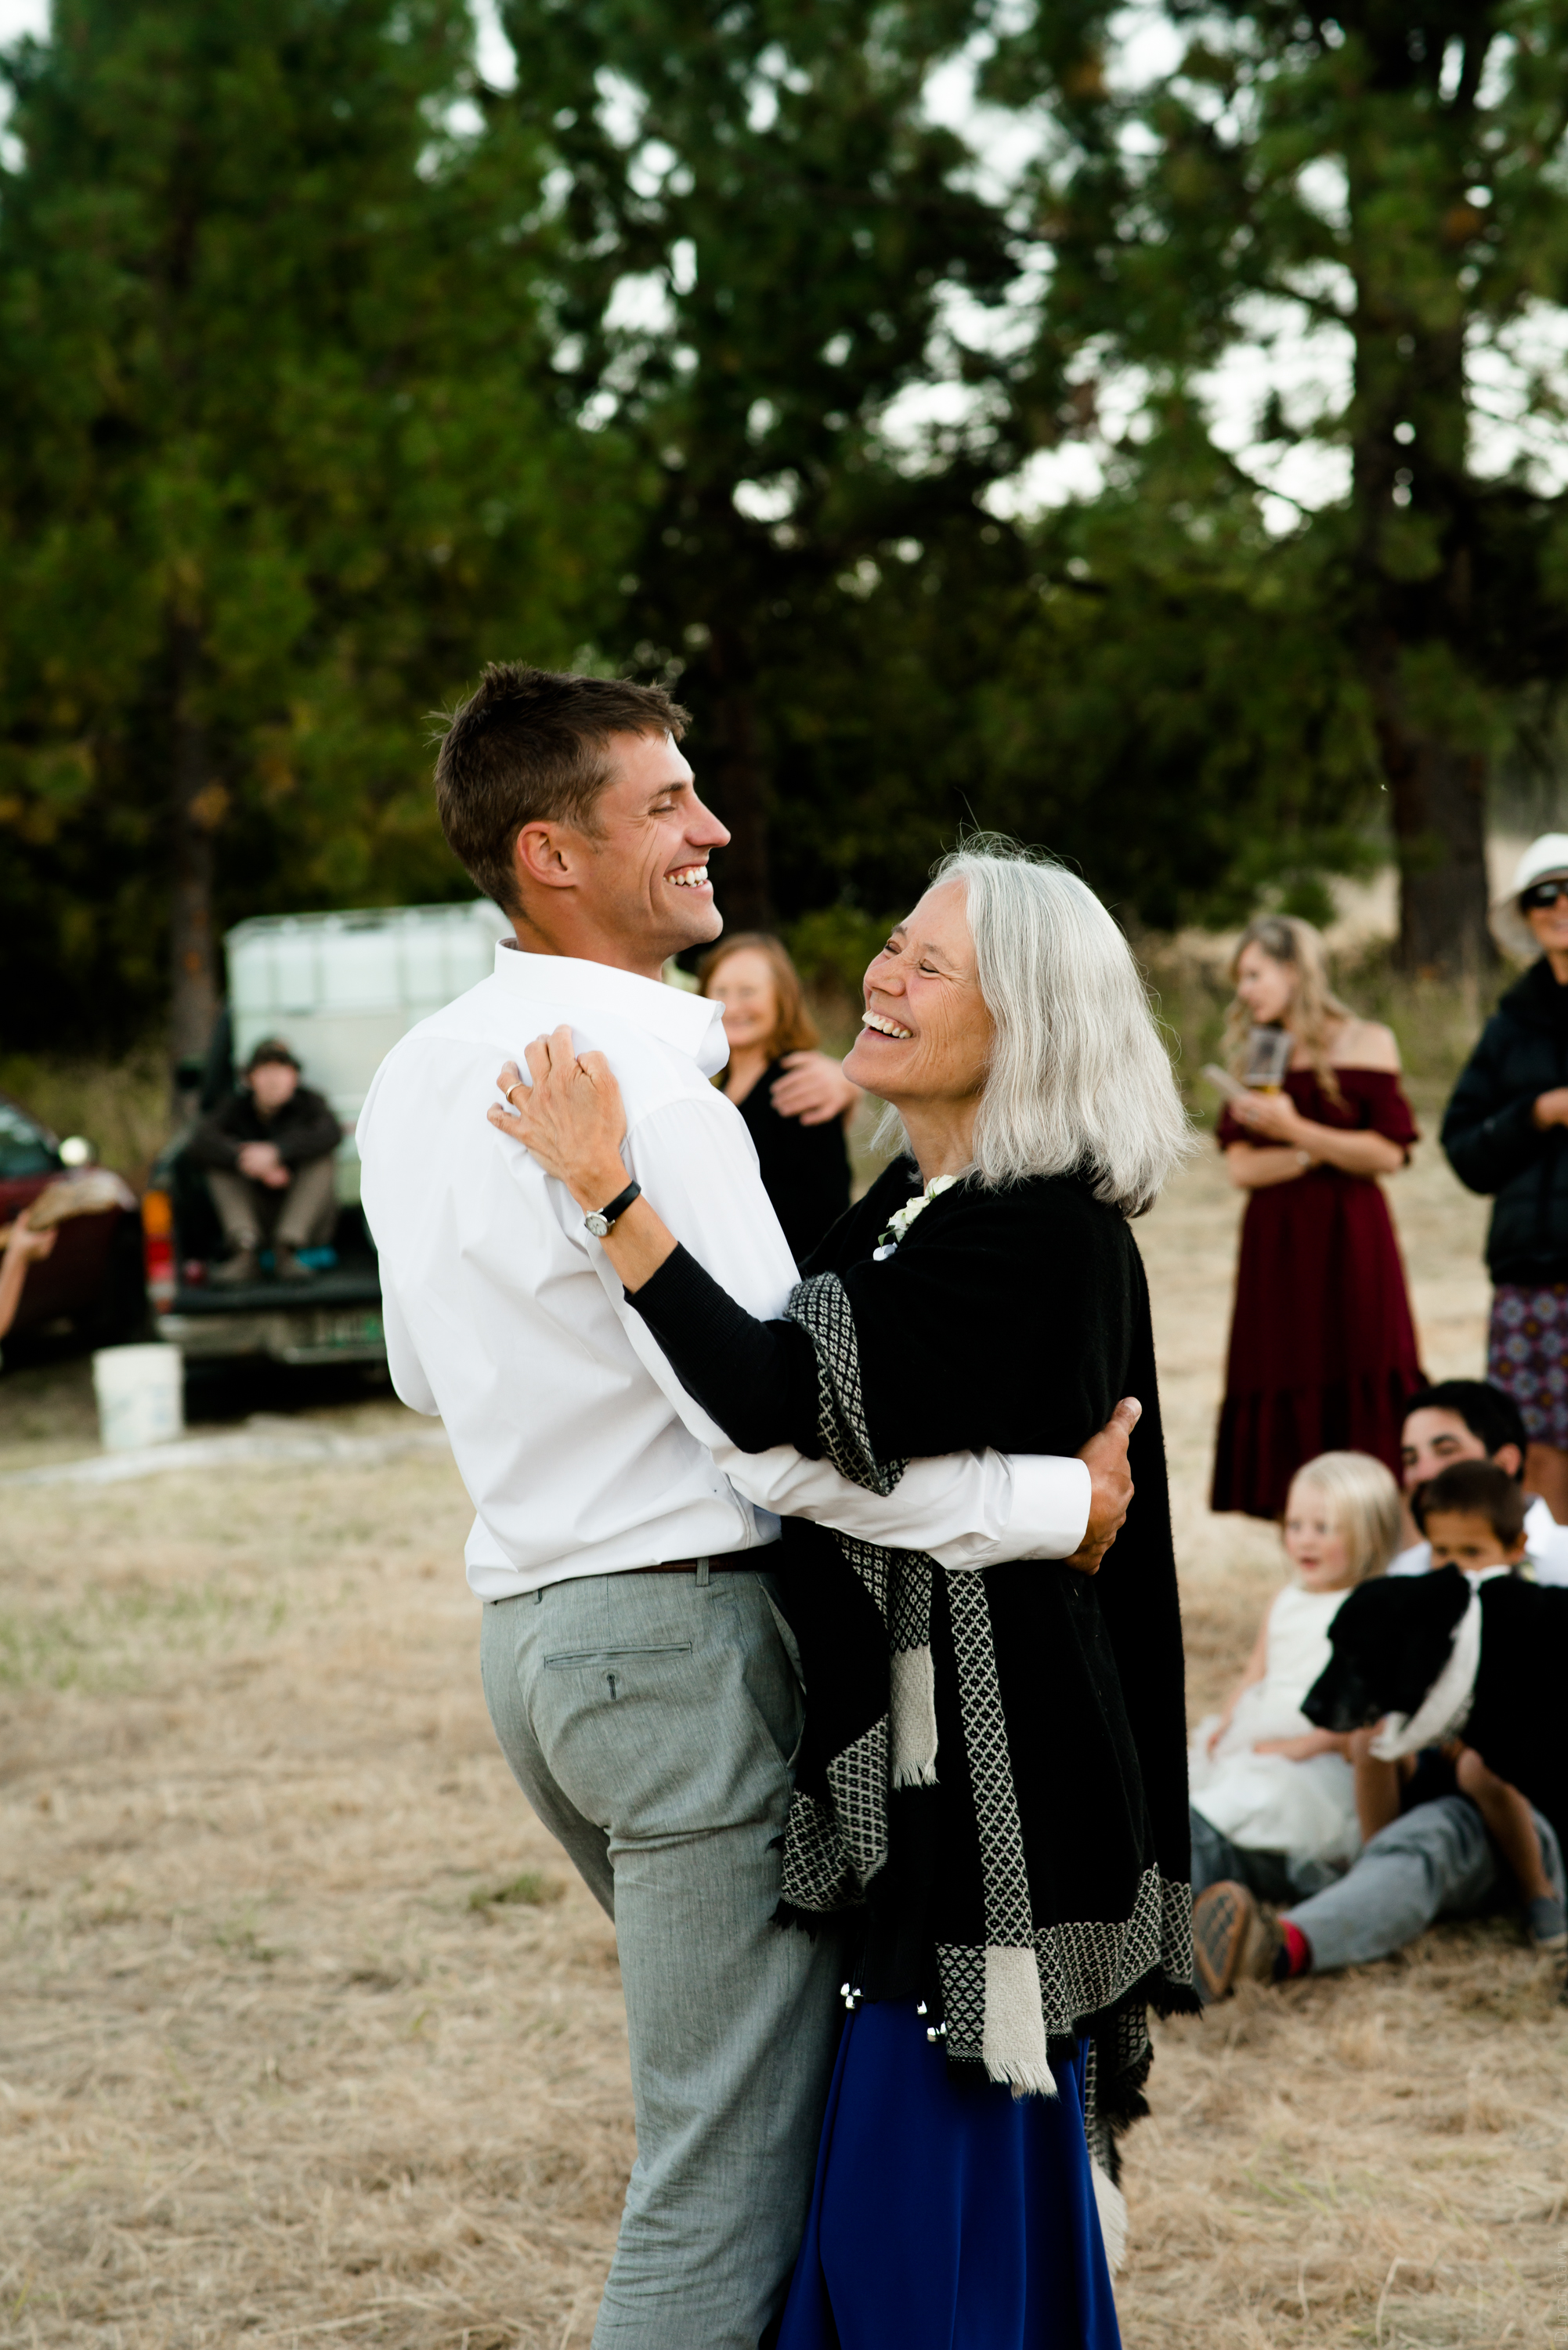 Lana Micah Wedding La Grande Oregon September 2018 Please Credit Talia Jean Galvin (520 of 687).jpg